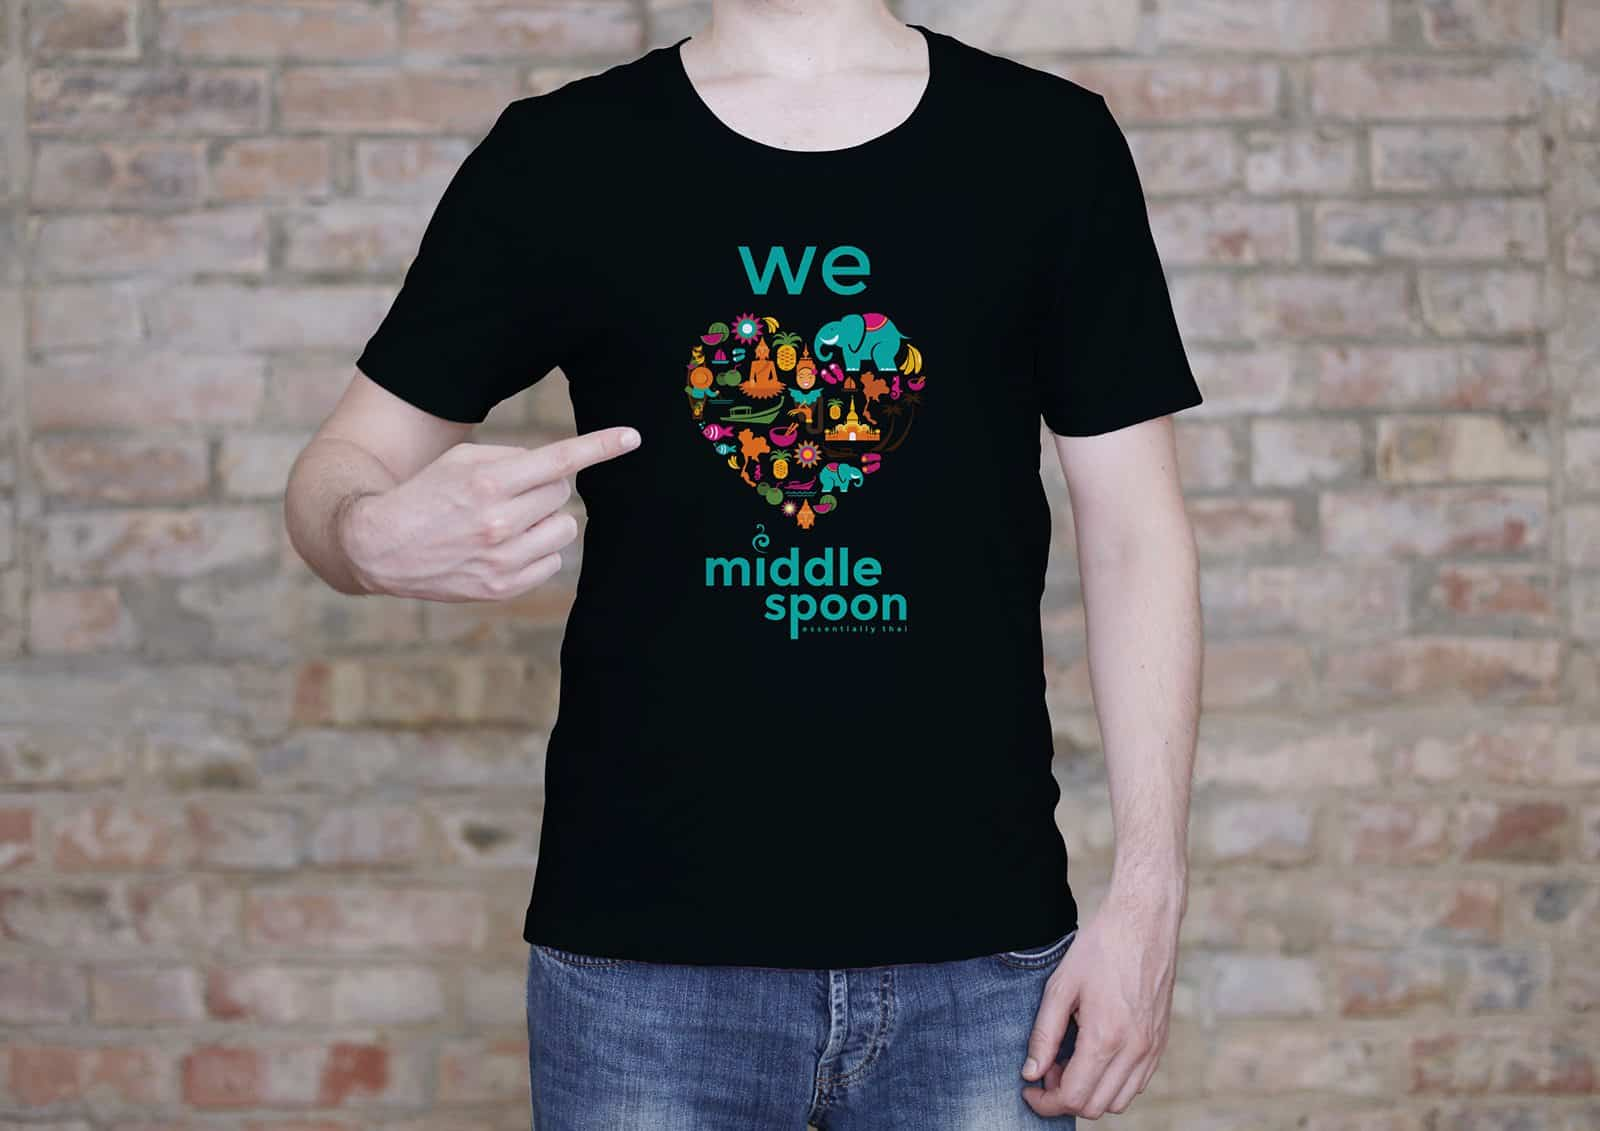 Middlespoon 9X